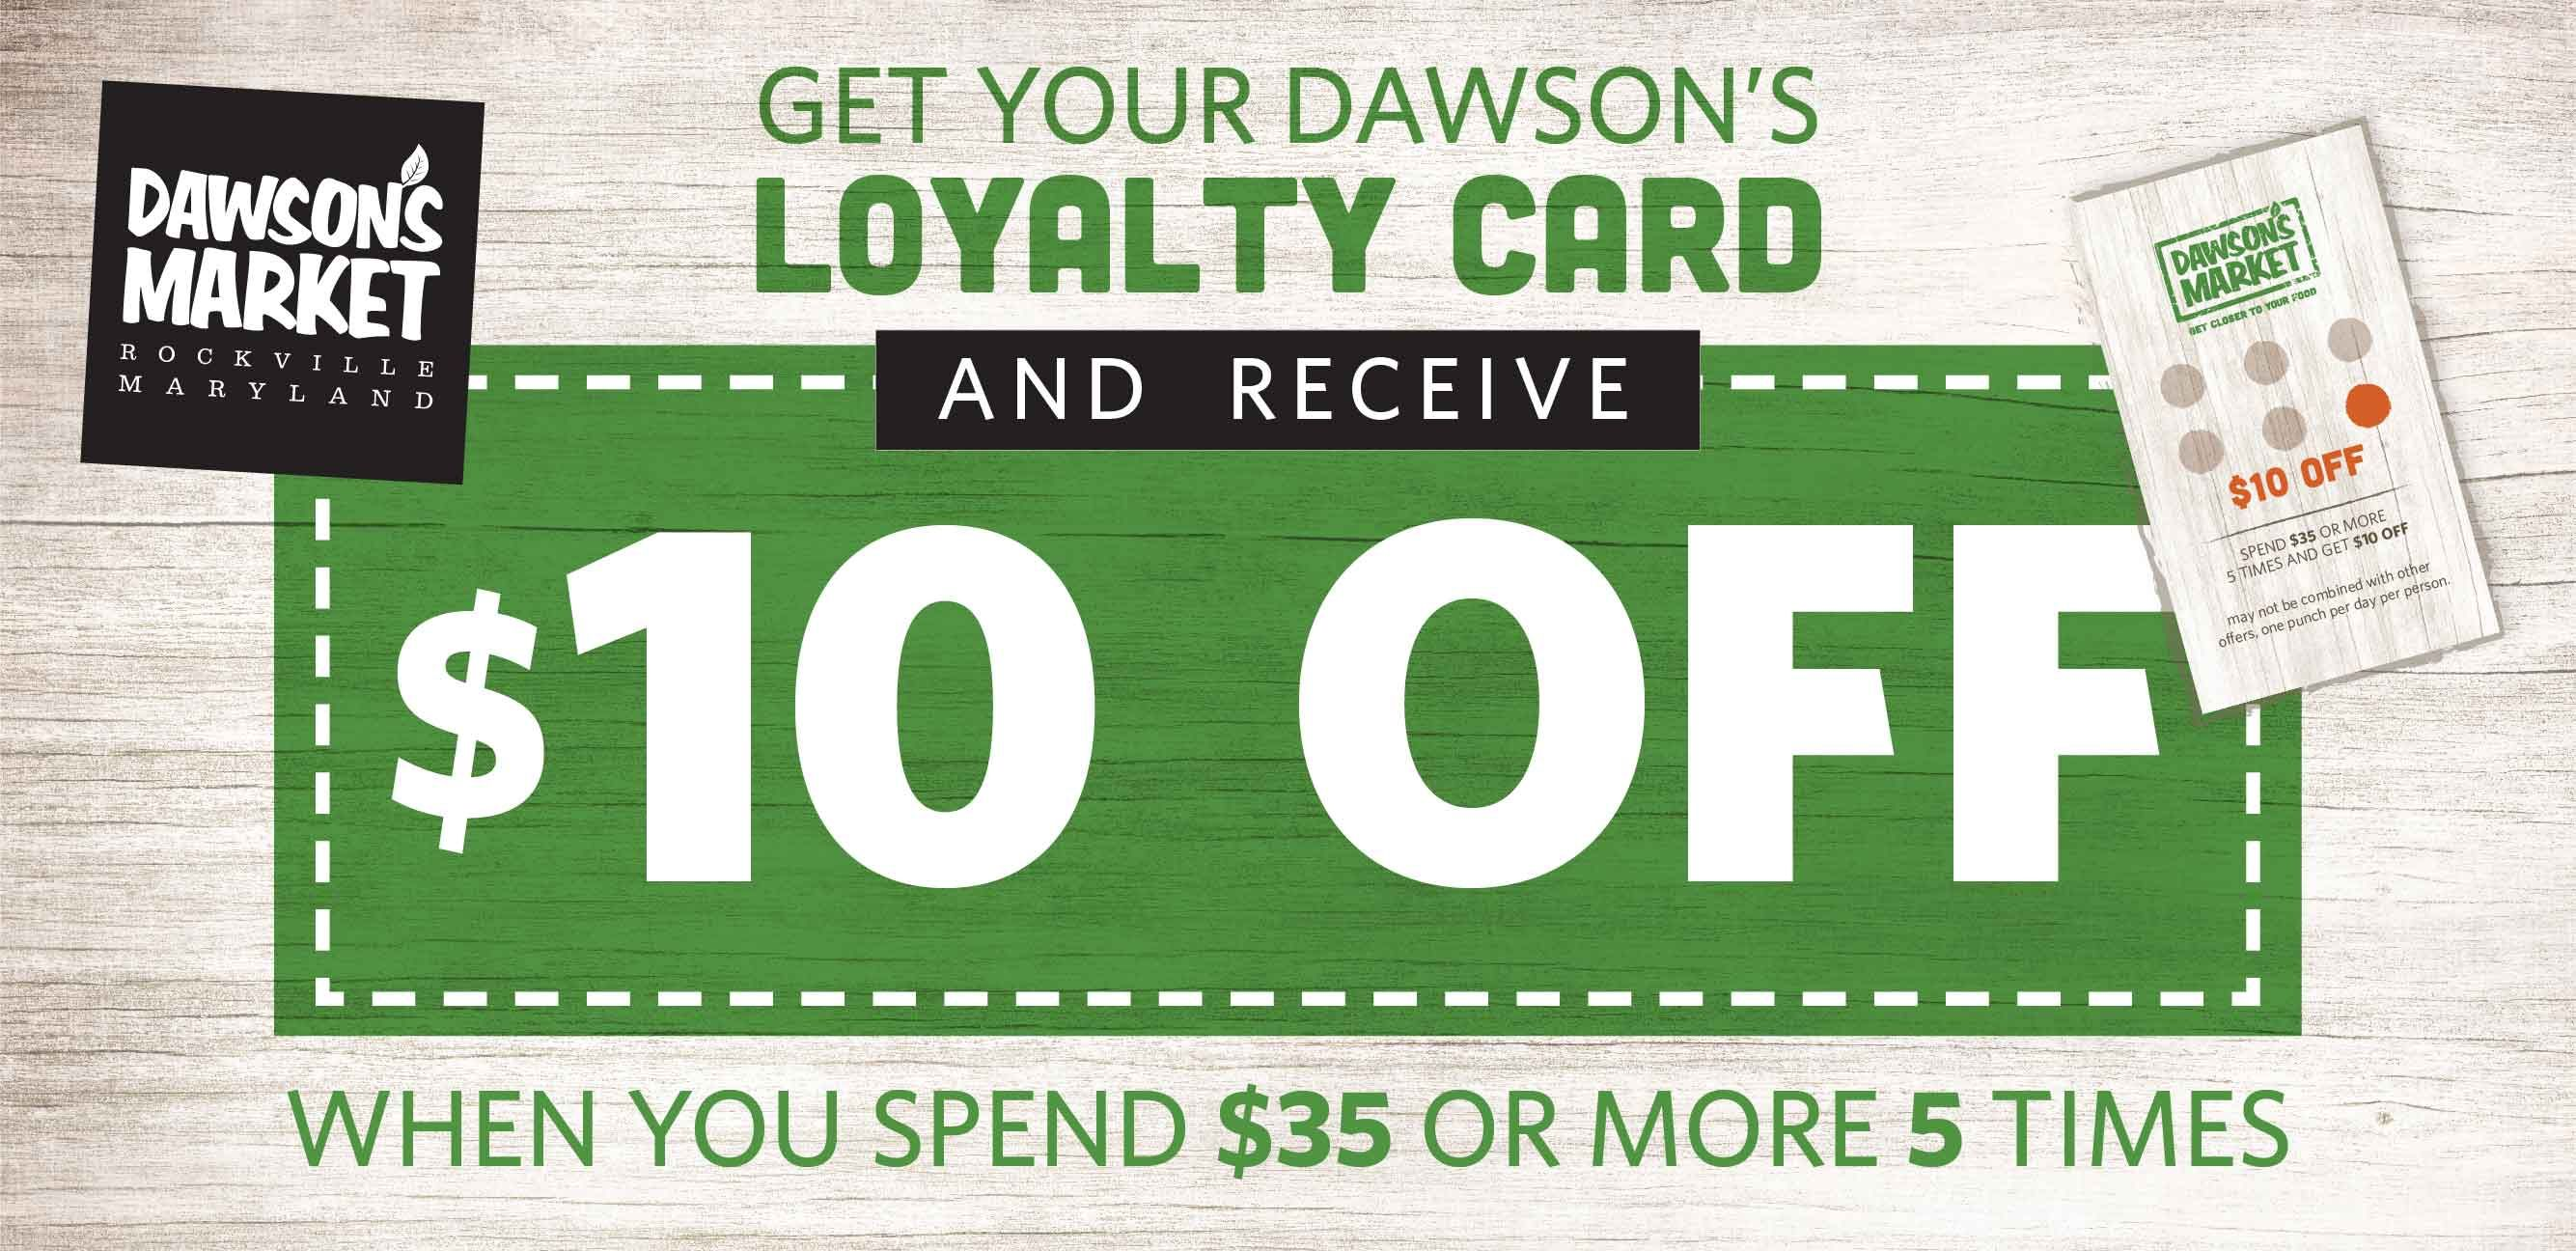 Loyalty Card_Front Page_Front Page Banner copy.jpg